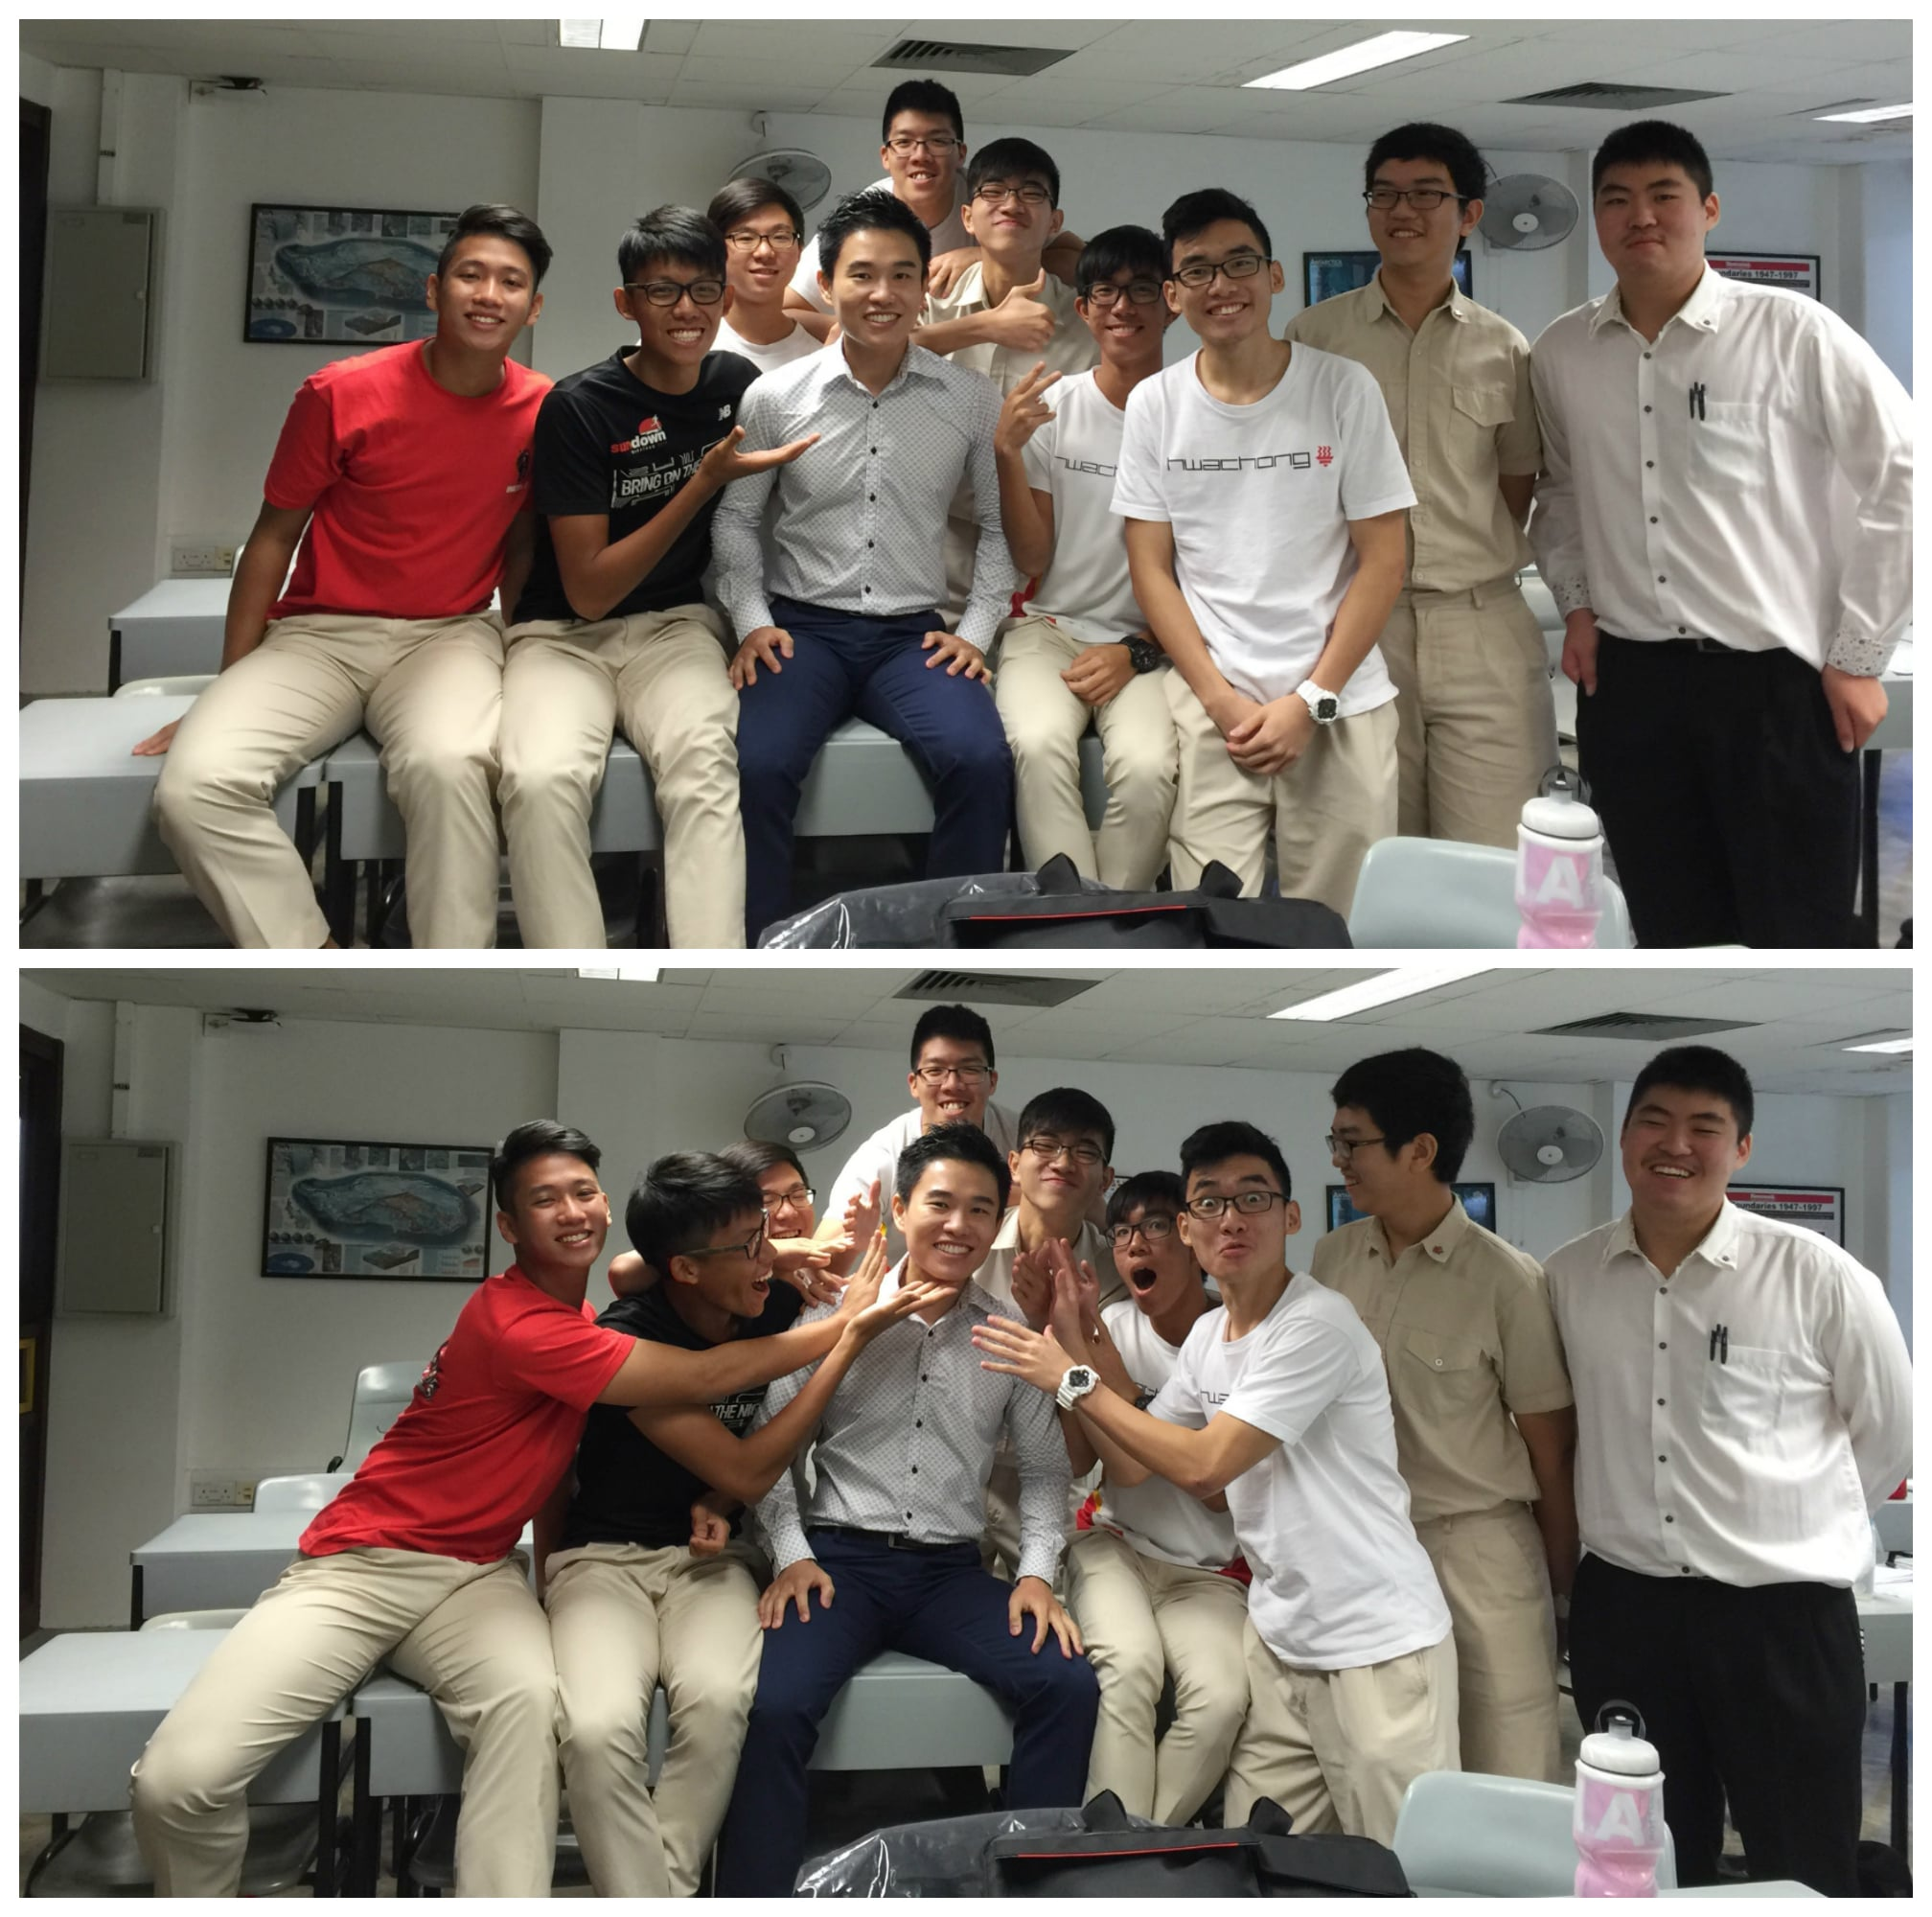 mens-grooming-workshop-singapore-hwa-chong-institution